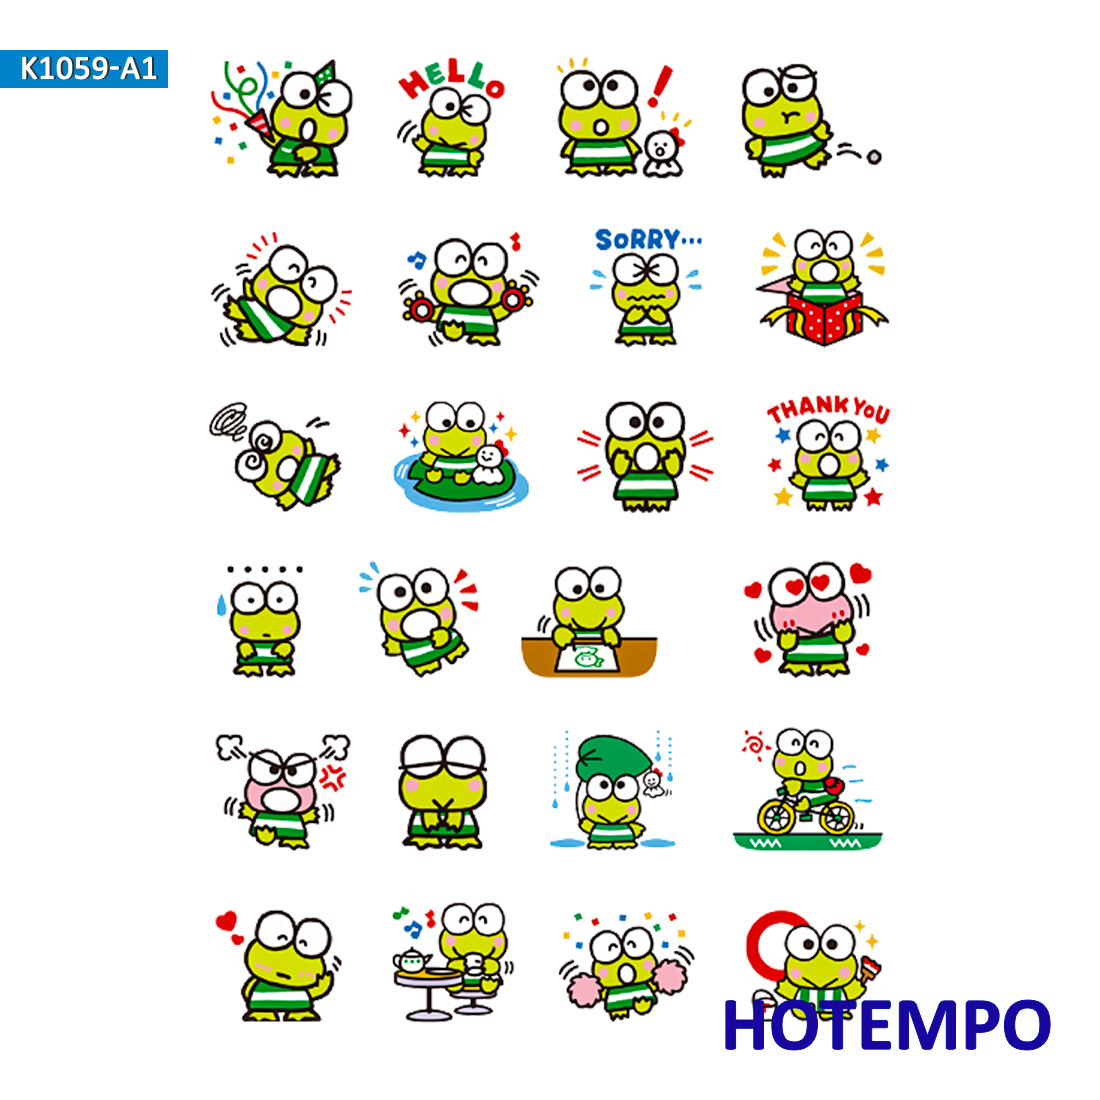 Cartoon Kerokero Keroppi Sanrio Stickers For Girl Children Kids Gift DIY Letter Diary Scrapbooking Stationery Pegatinas Stickers